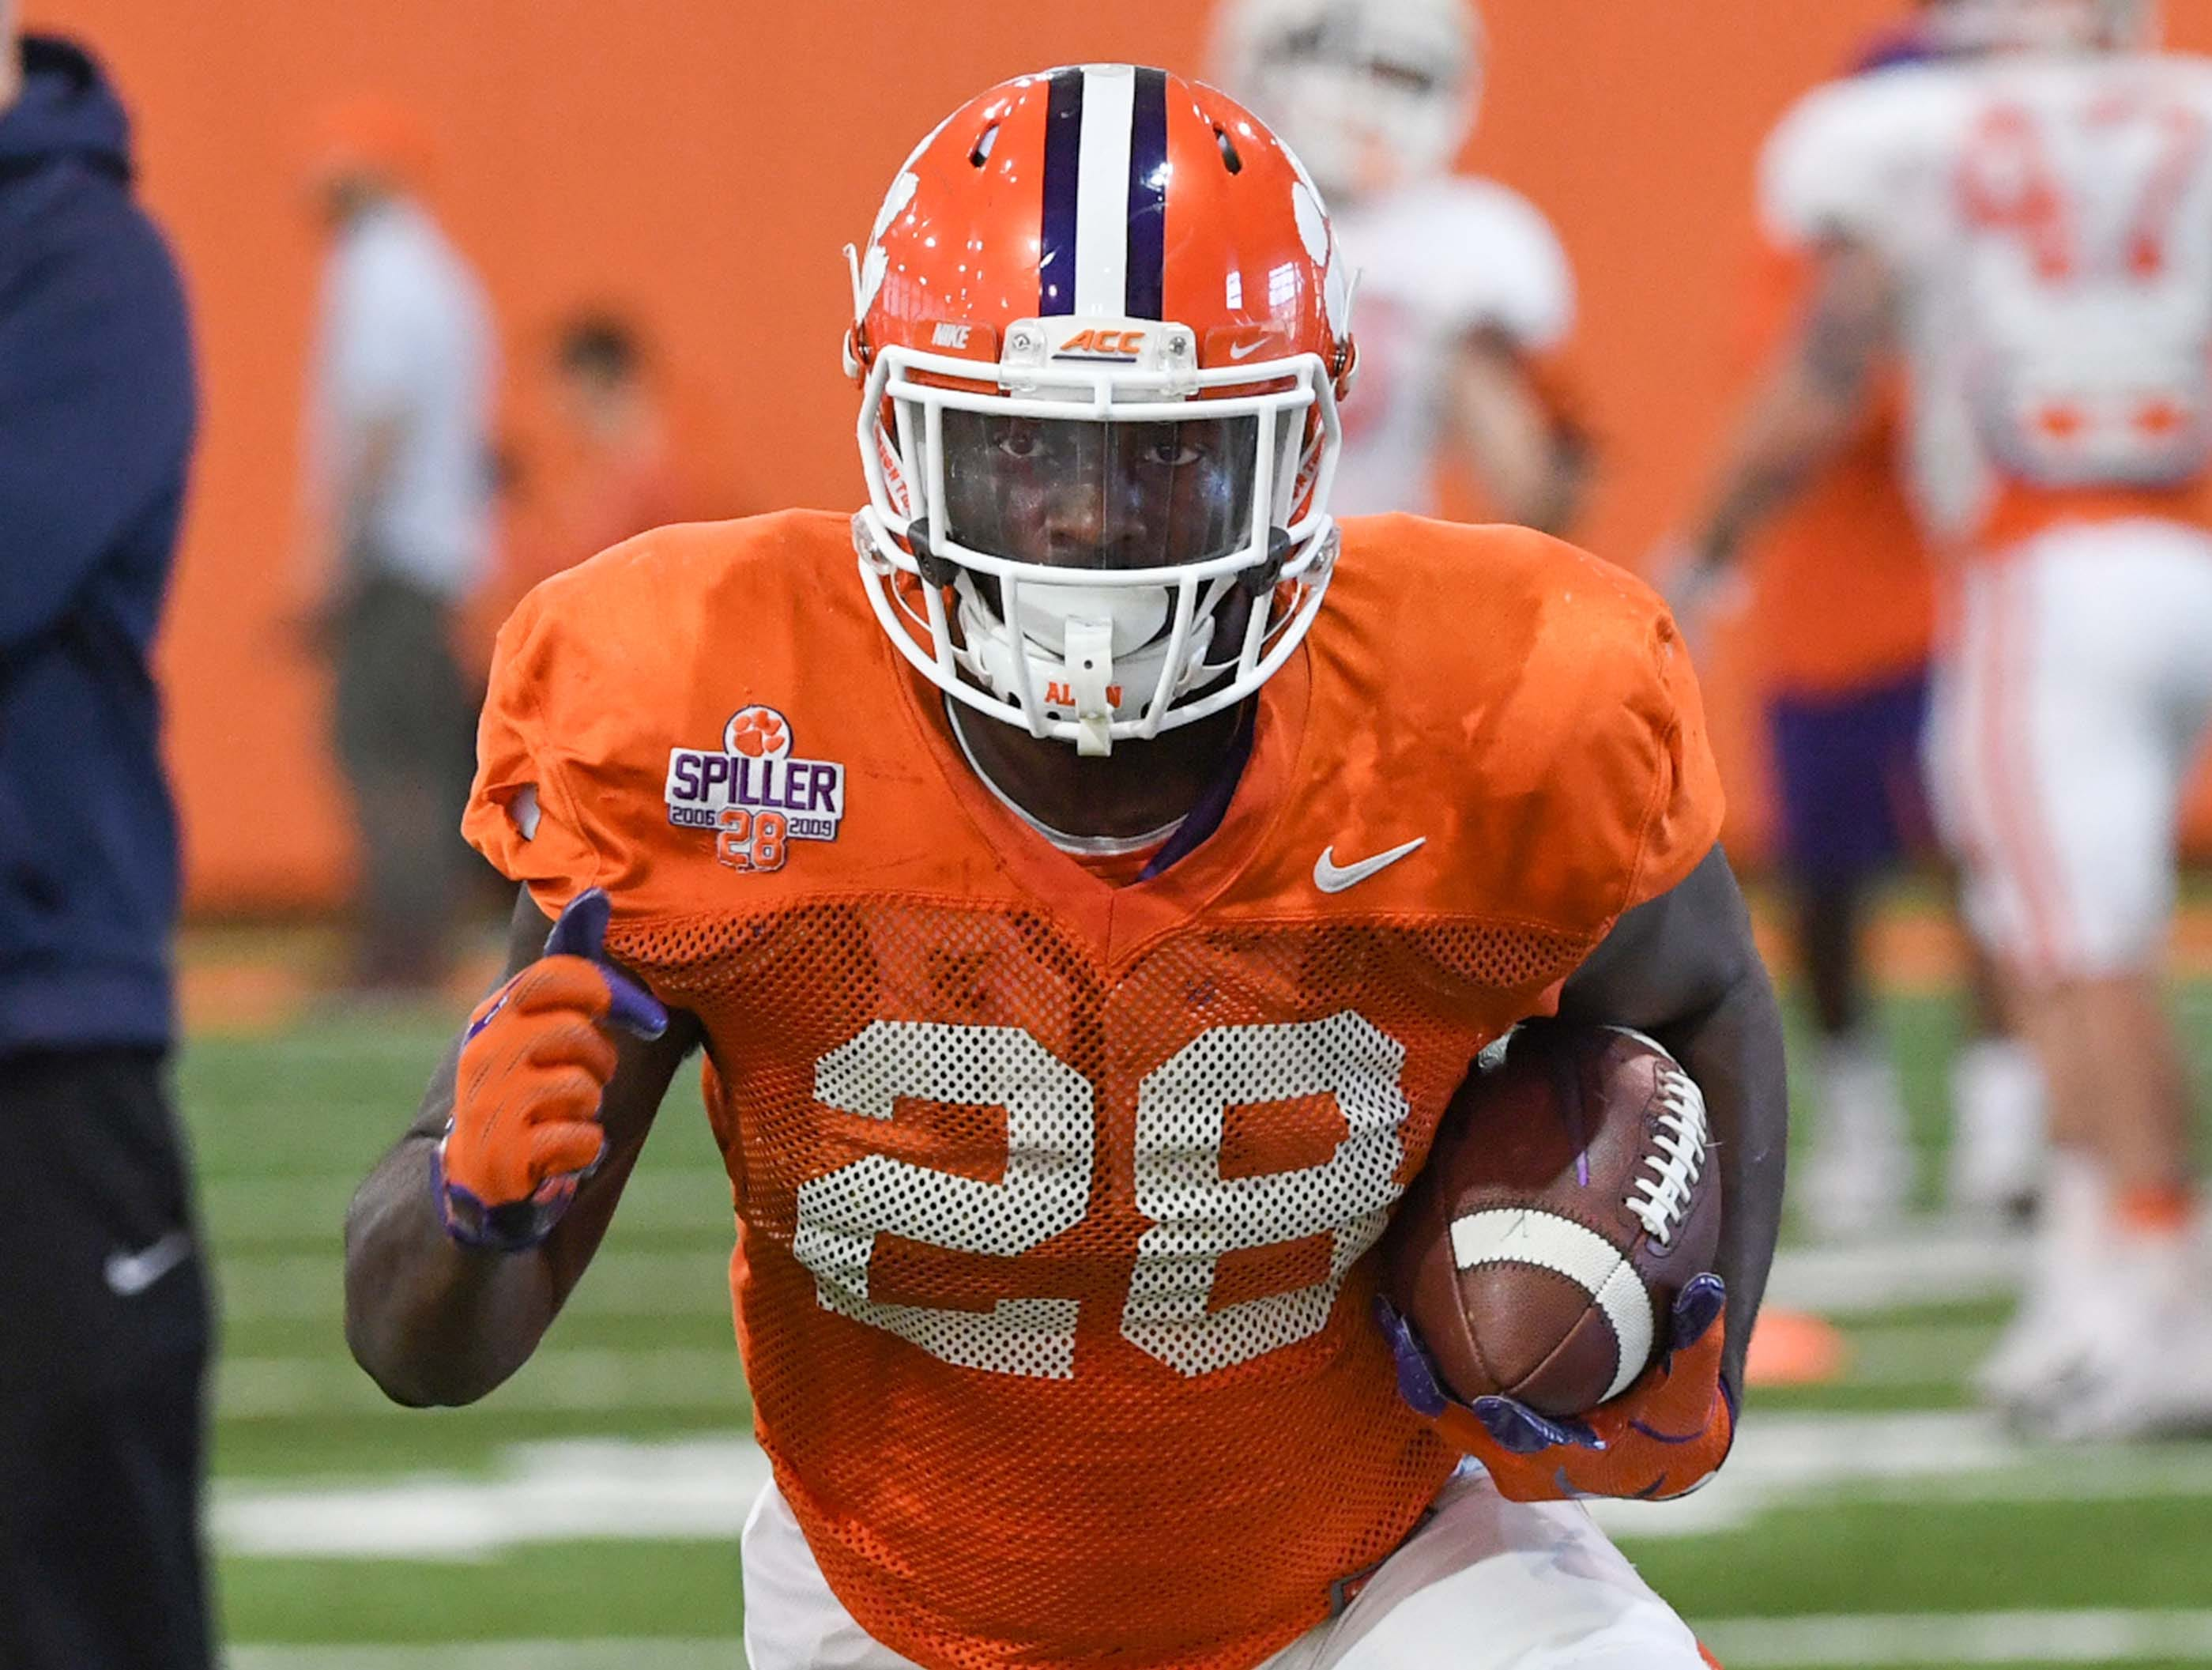 Clemson running back Tavien Feaster (28) runs during practice at the Poe Indoor Facility in Clemson Monday.